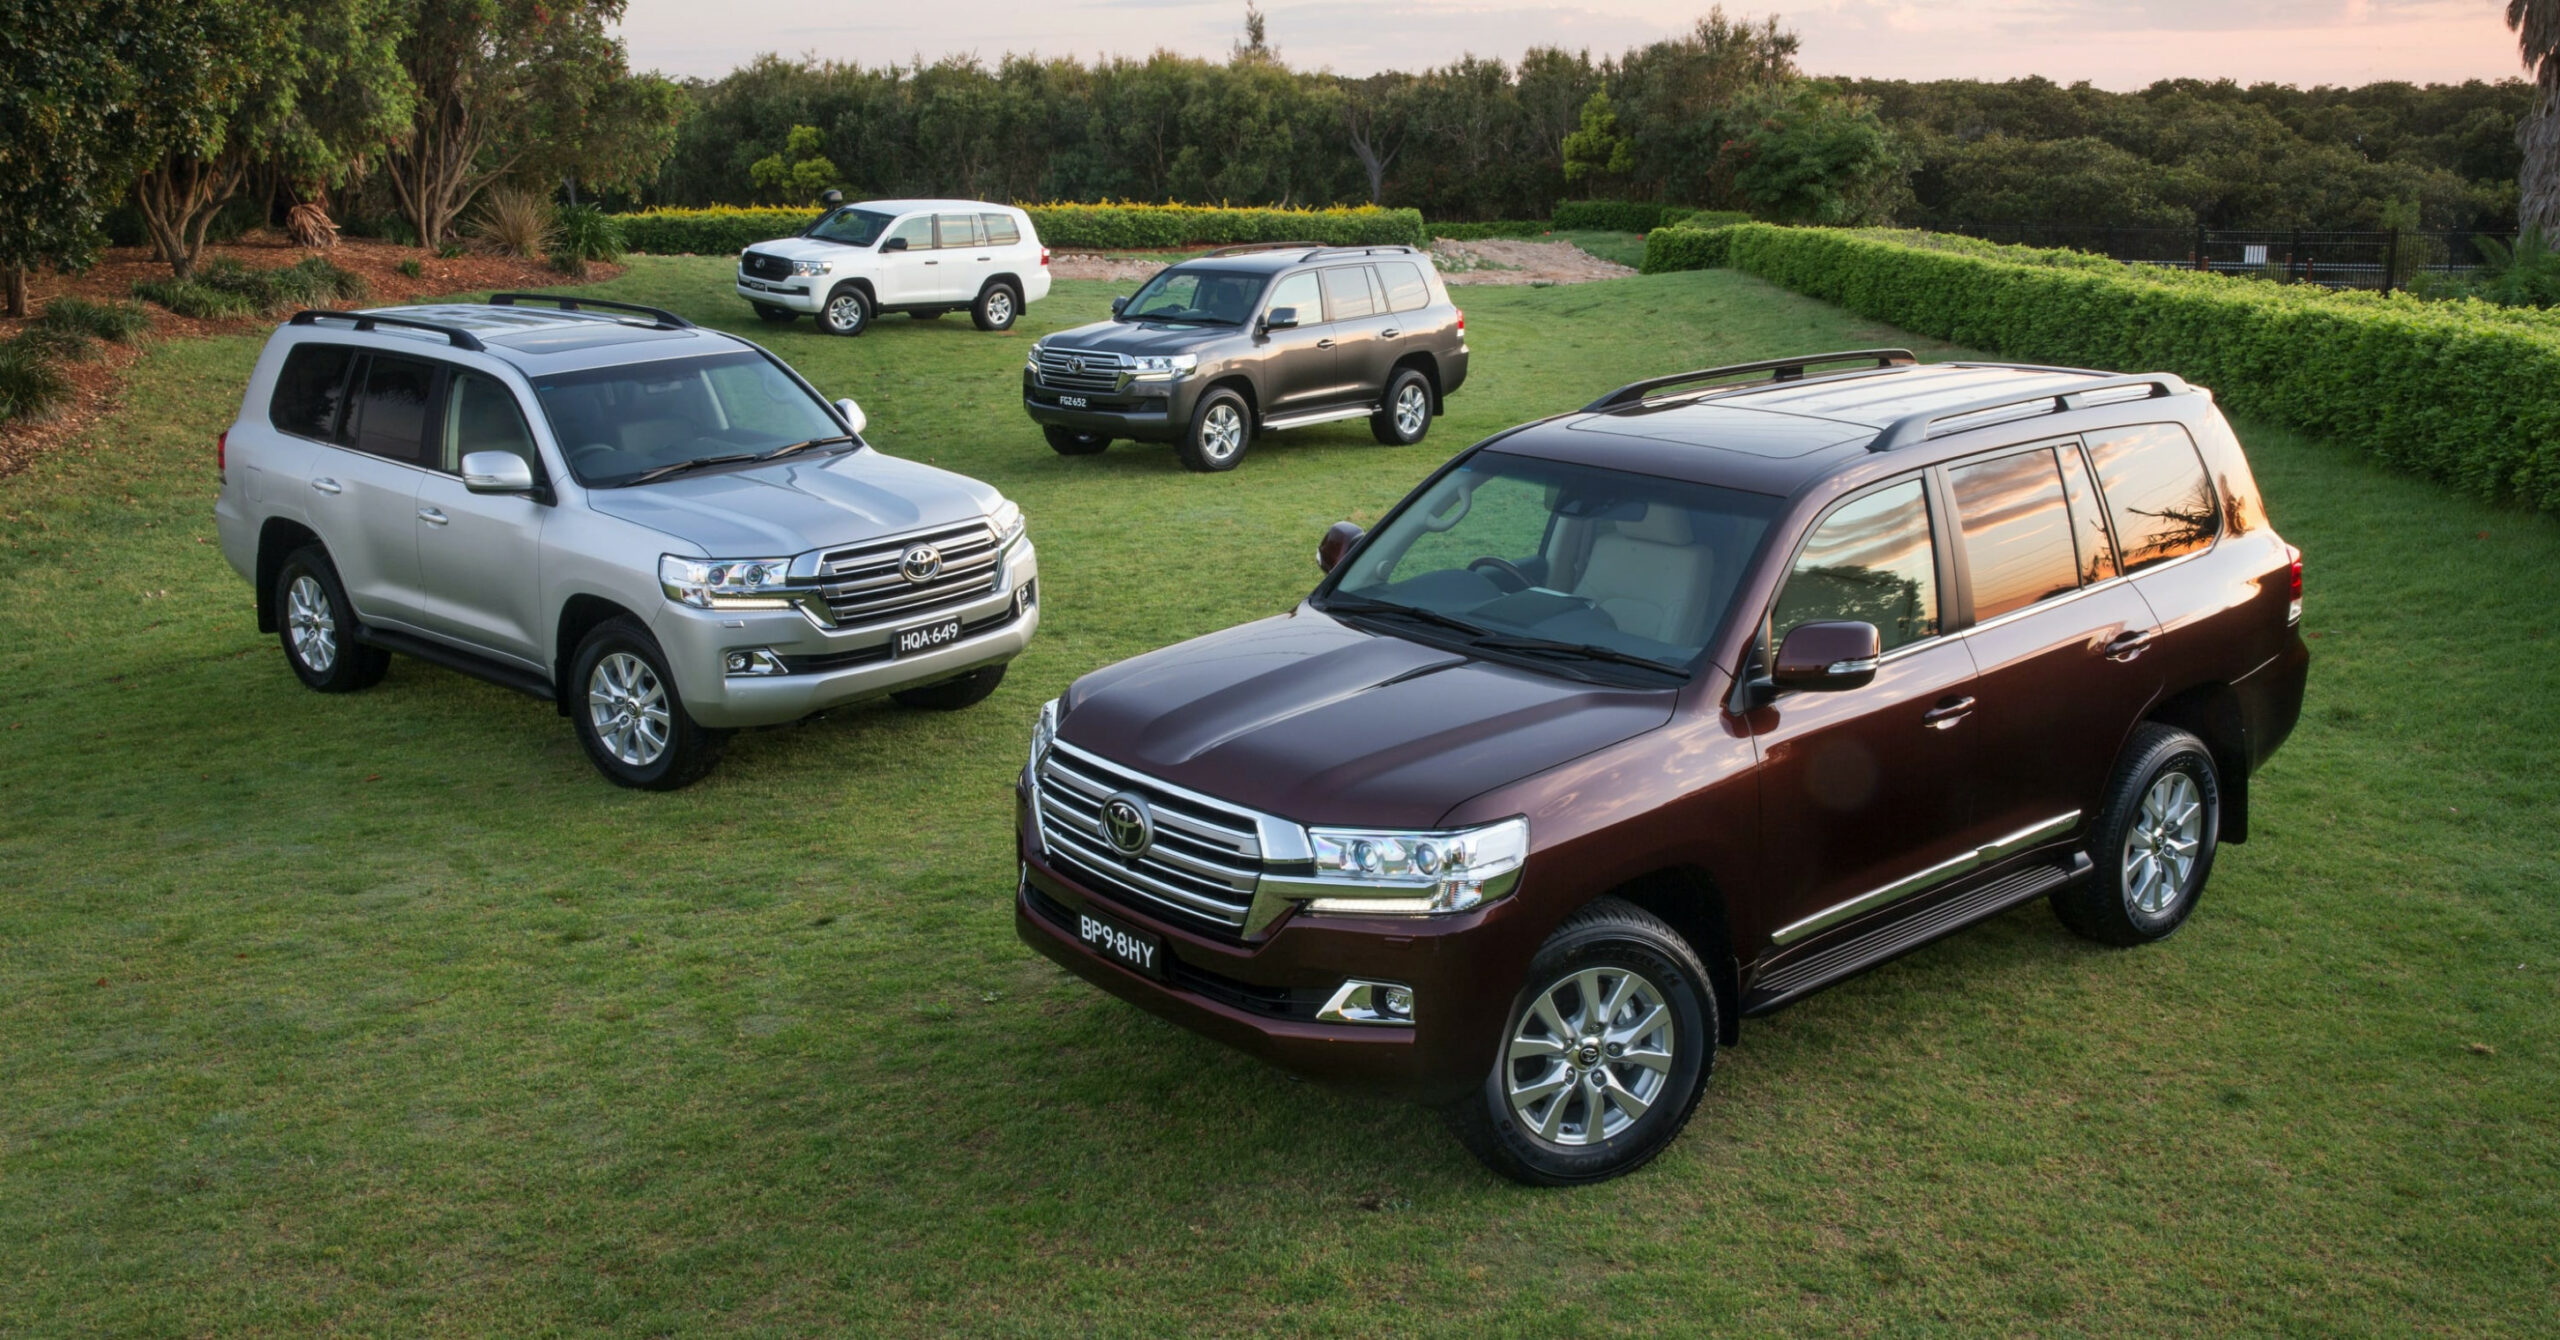 Overview 2022 Land Cruiser